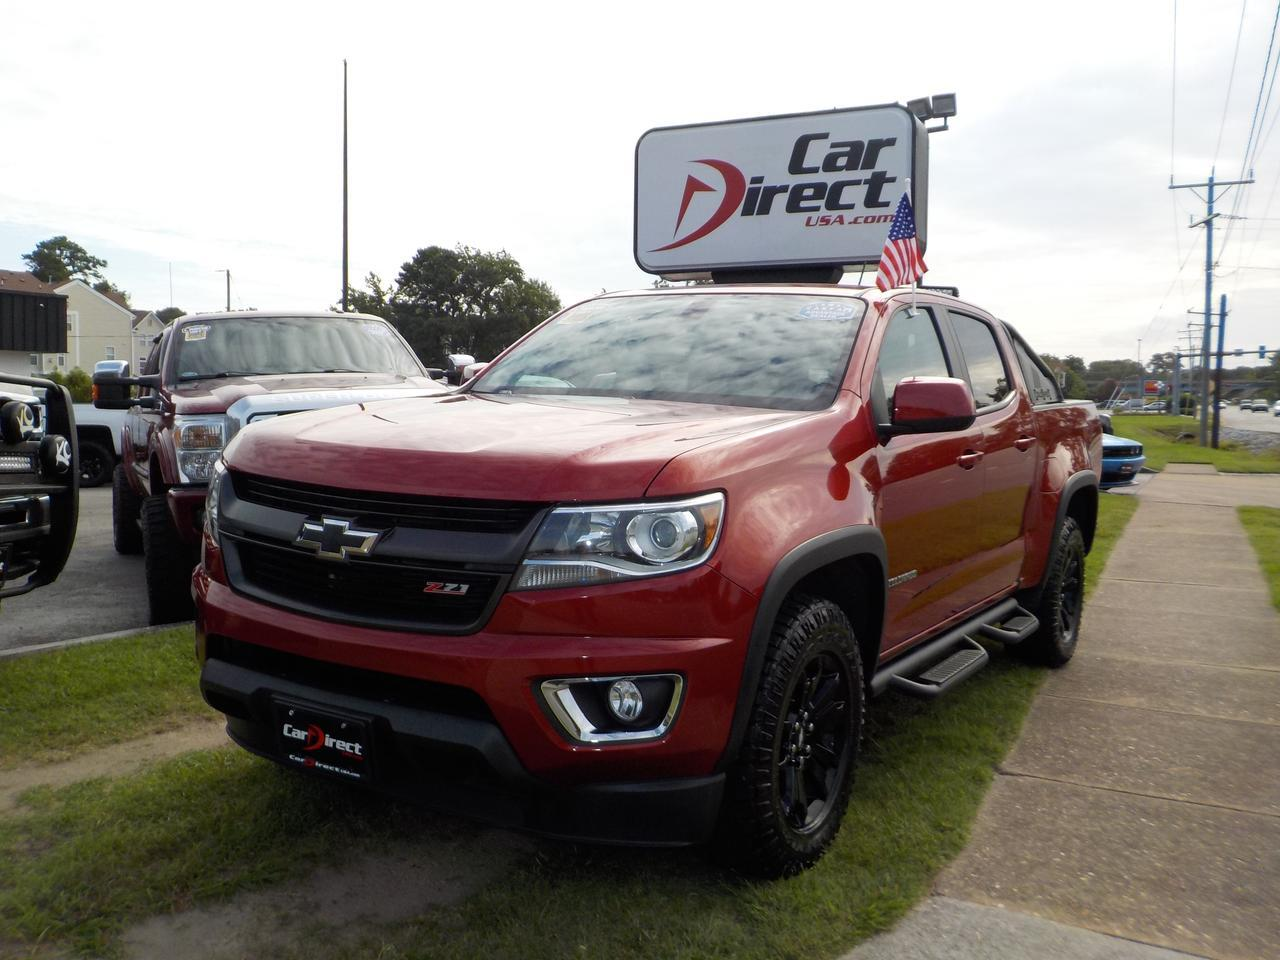 2016 CHEVROLET COLORADO Z71 CREW CAB 4X4, LEATHER, HEATED FRONT SEATS, NAV, BLUETOOTH, BACKUP CAM, TOW PKG, 1 OWNER! Virginia Beach VA